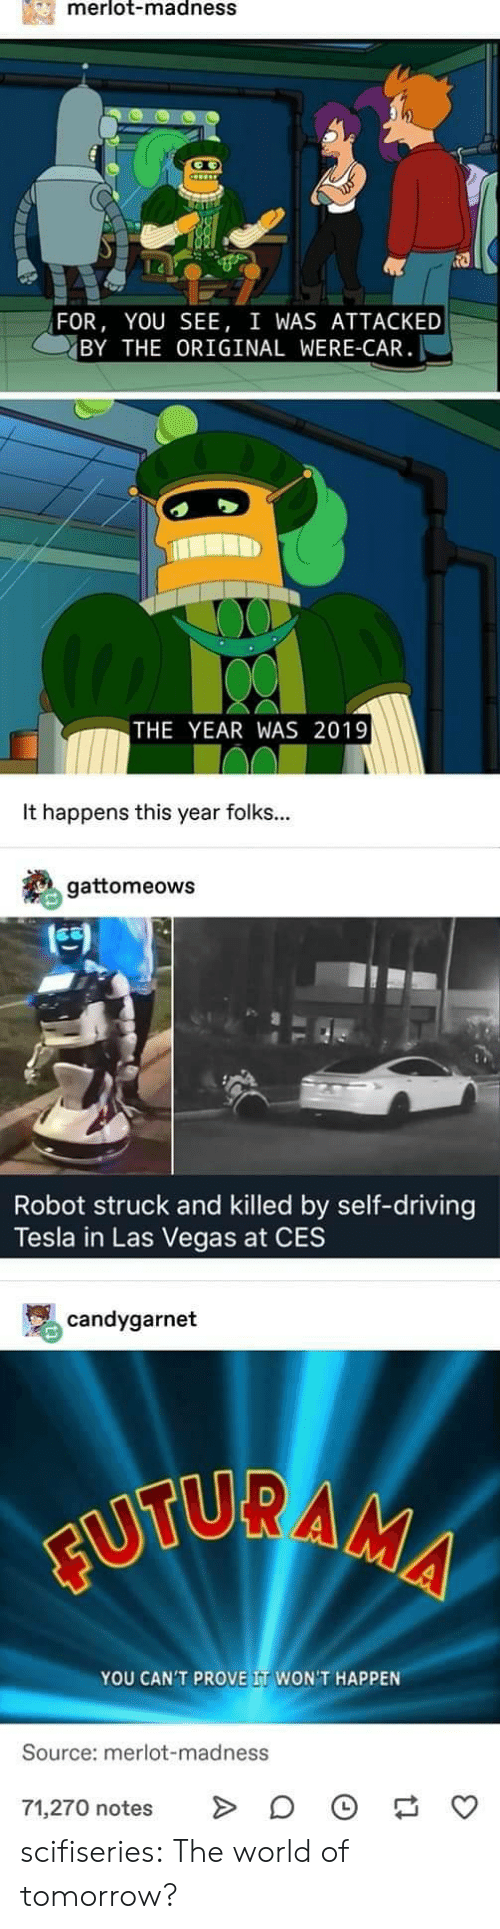 Driving, Tumblr, and Las Vegas: merlot-madnesS  FOR, YOU SEE, I WAS ATTACKED  BY THE ORIGINAL WERE-CAR  THE YEAR WAS 2019  It happens this year folks...  gattomeows  凹  Robot struck and killed by self-driving  Tesla in Las Vegas at CES  骂candygarnet  YOU CAN'T PROVE IT WON'T HAPPEN  Source: merlot-madness  71,270 notes > 。 scifiseries:  The world of tomorrow?